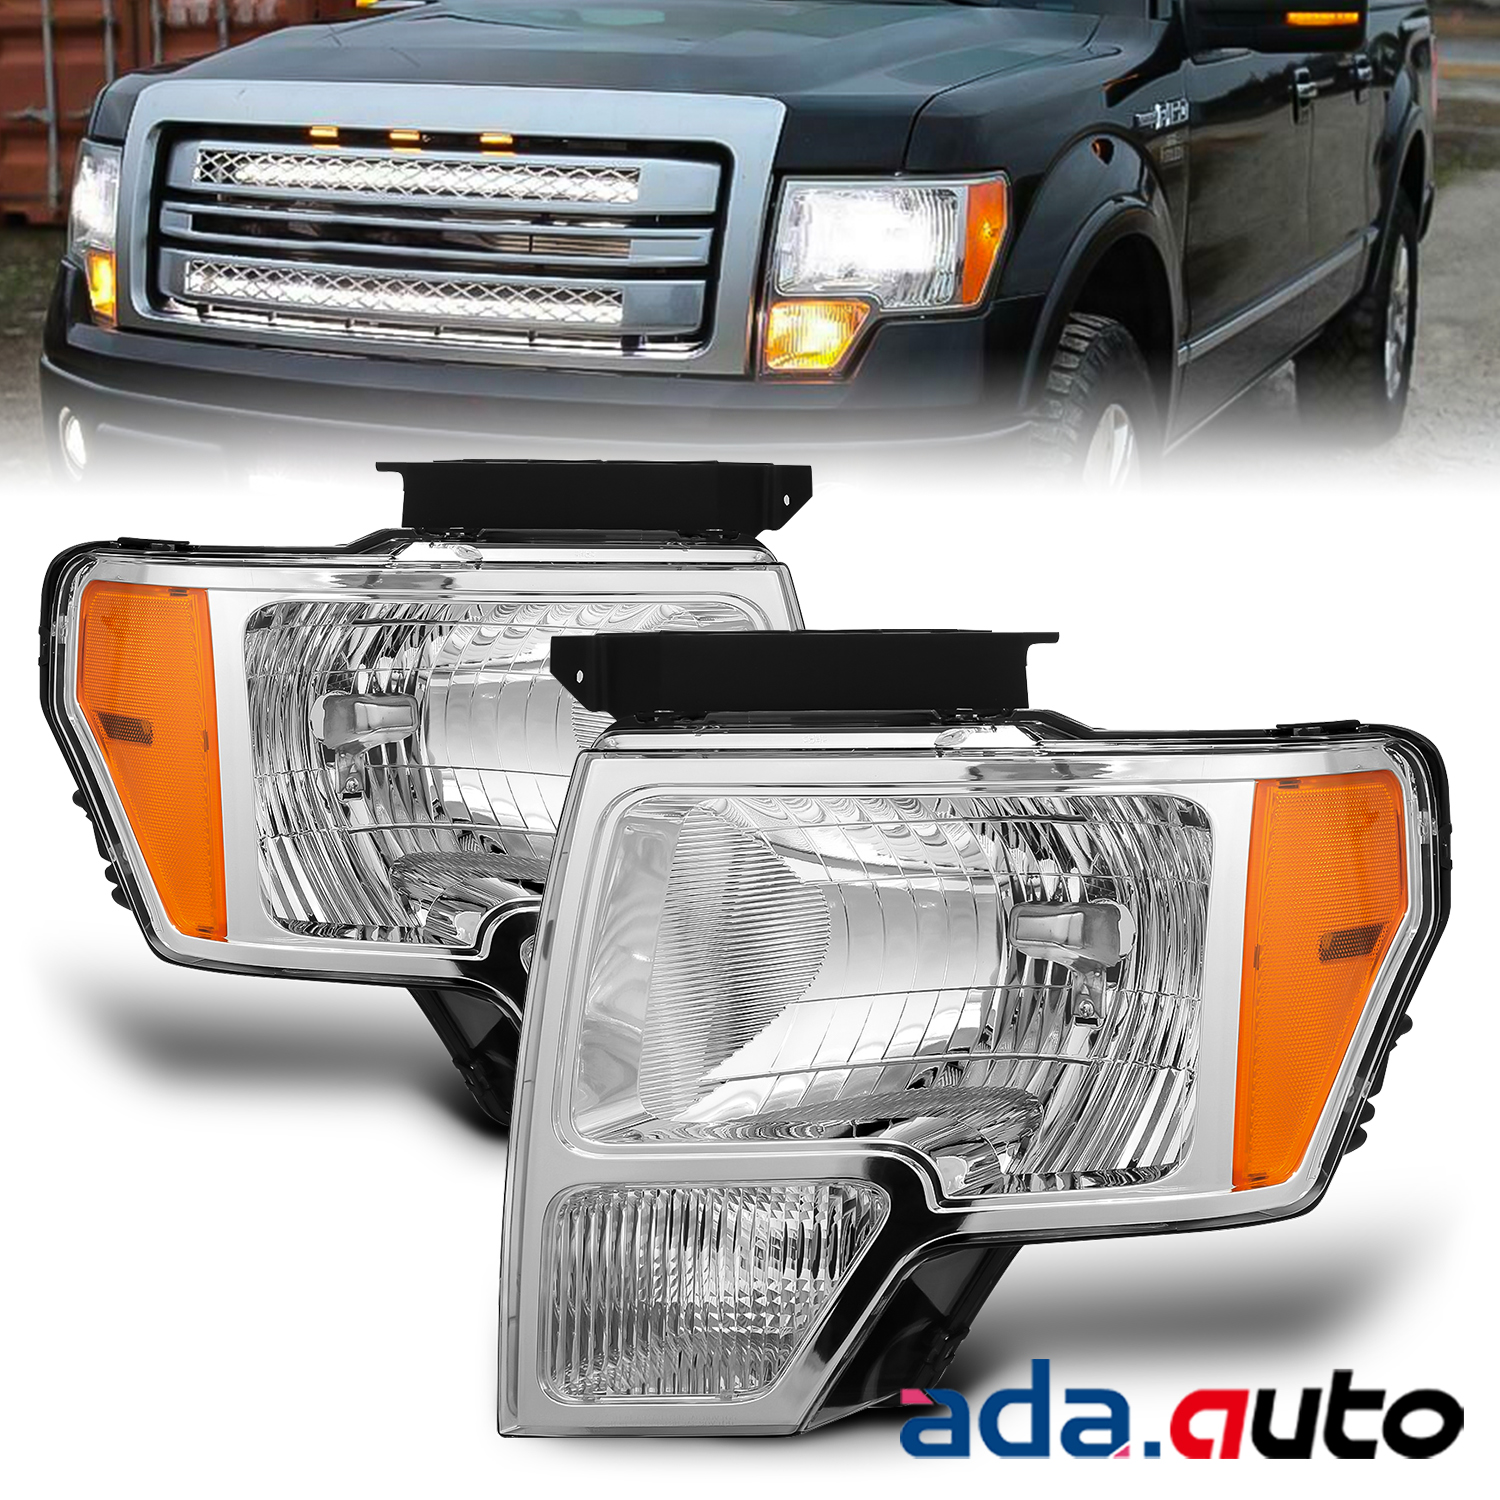 Fit 2009-2014 Ford F-150 Pickup Factory Style Chrome Headlights Head Lamps Pair